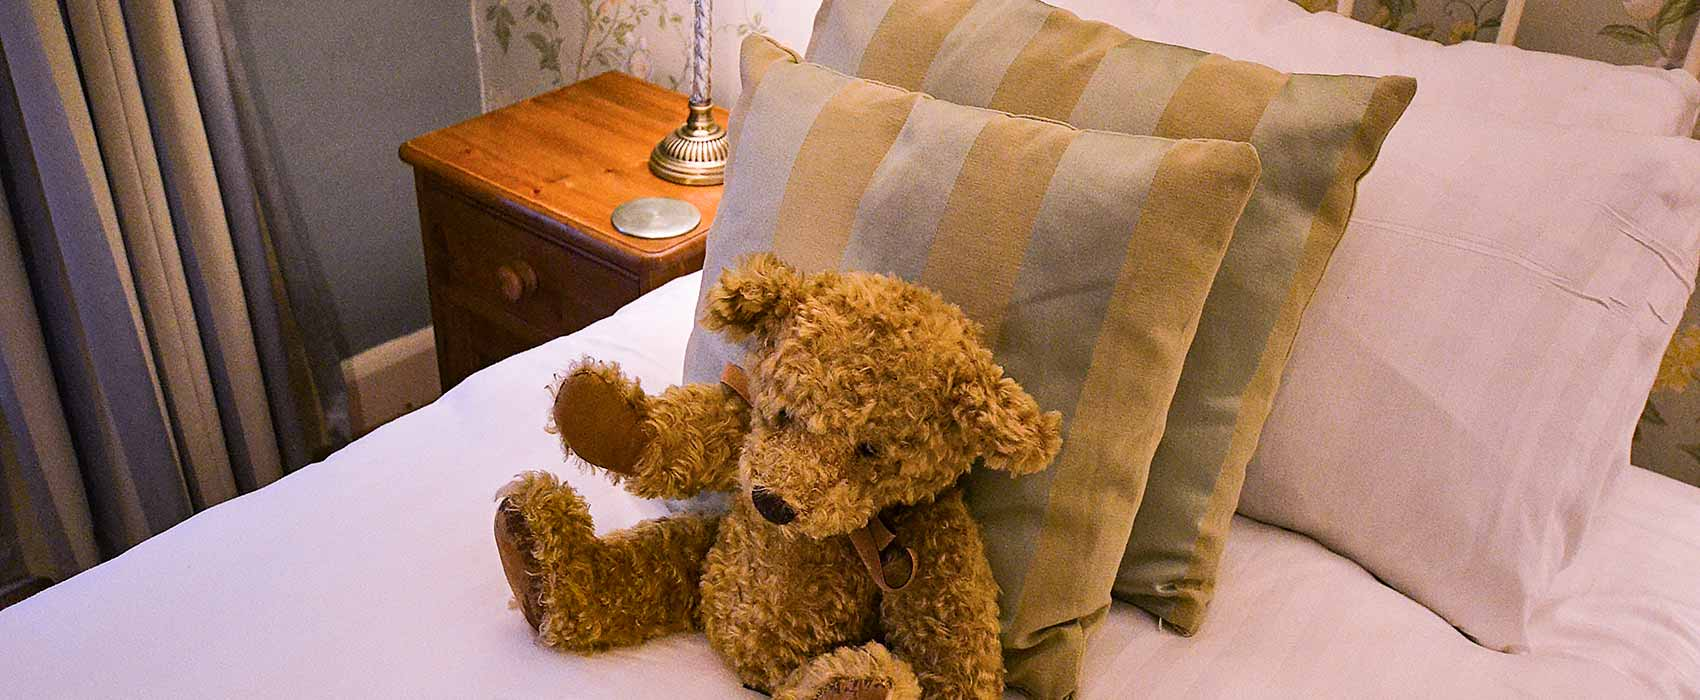 Teddy sitting on a made bed with cushions